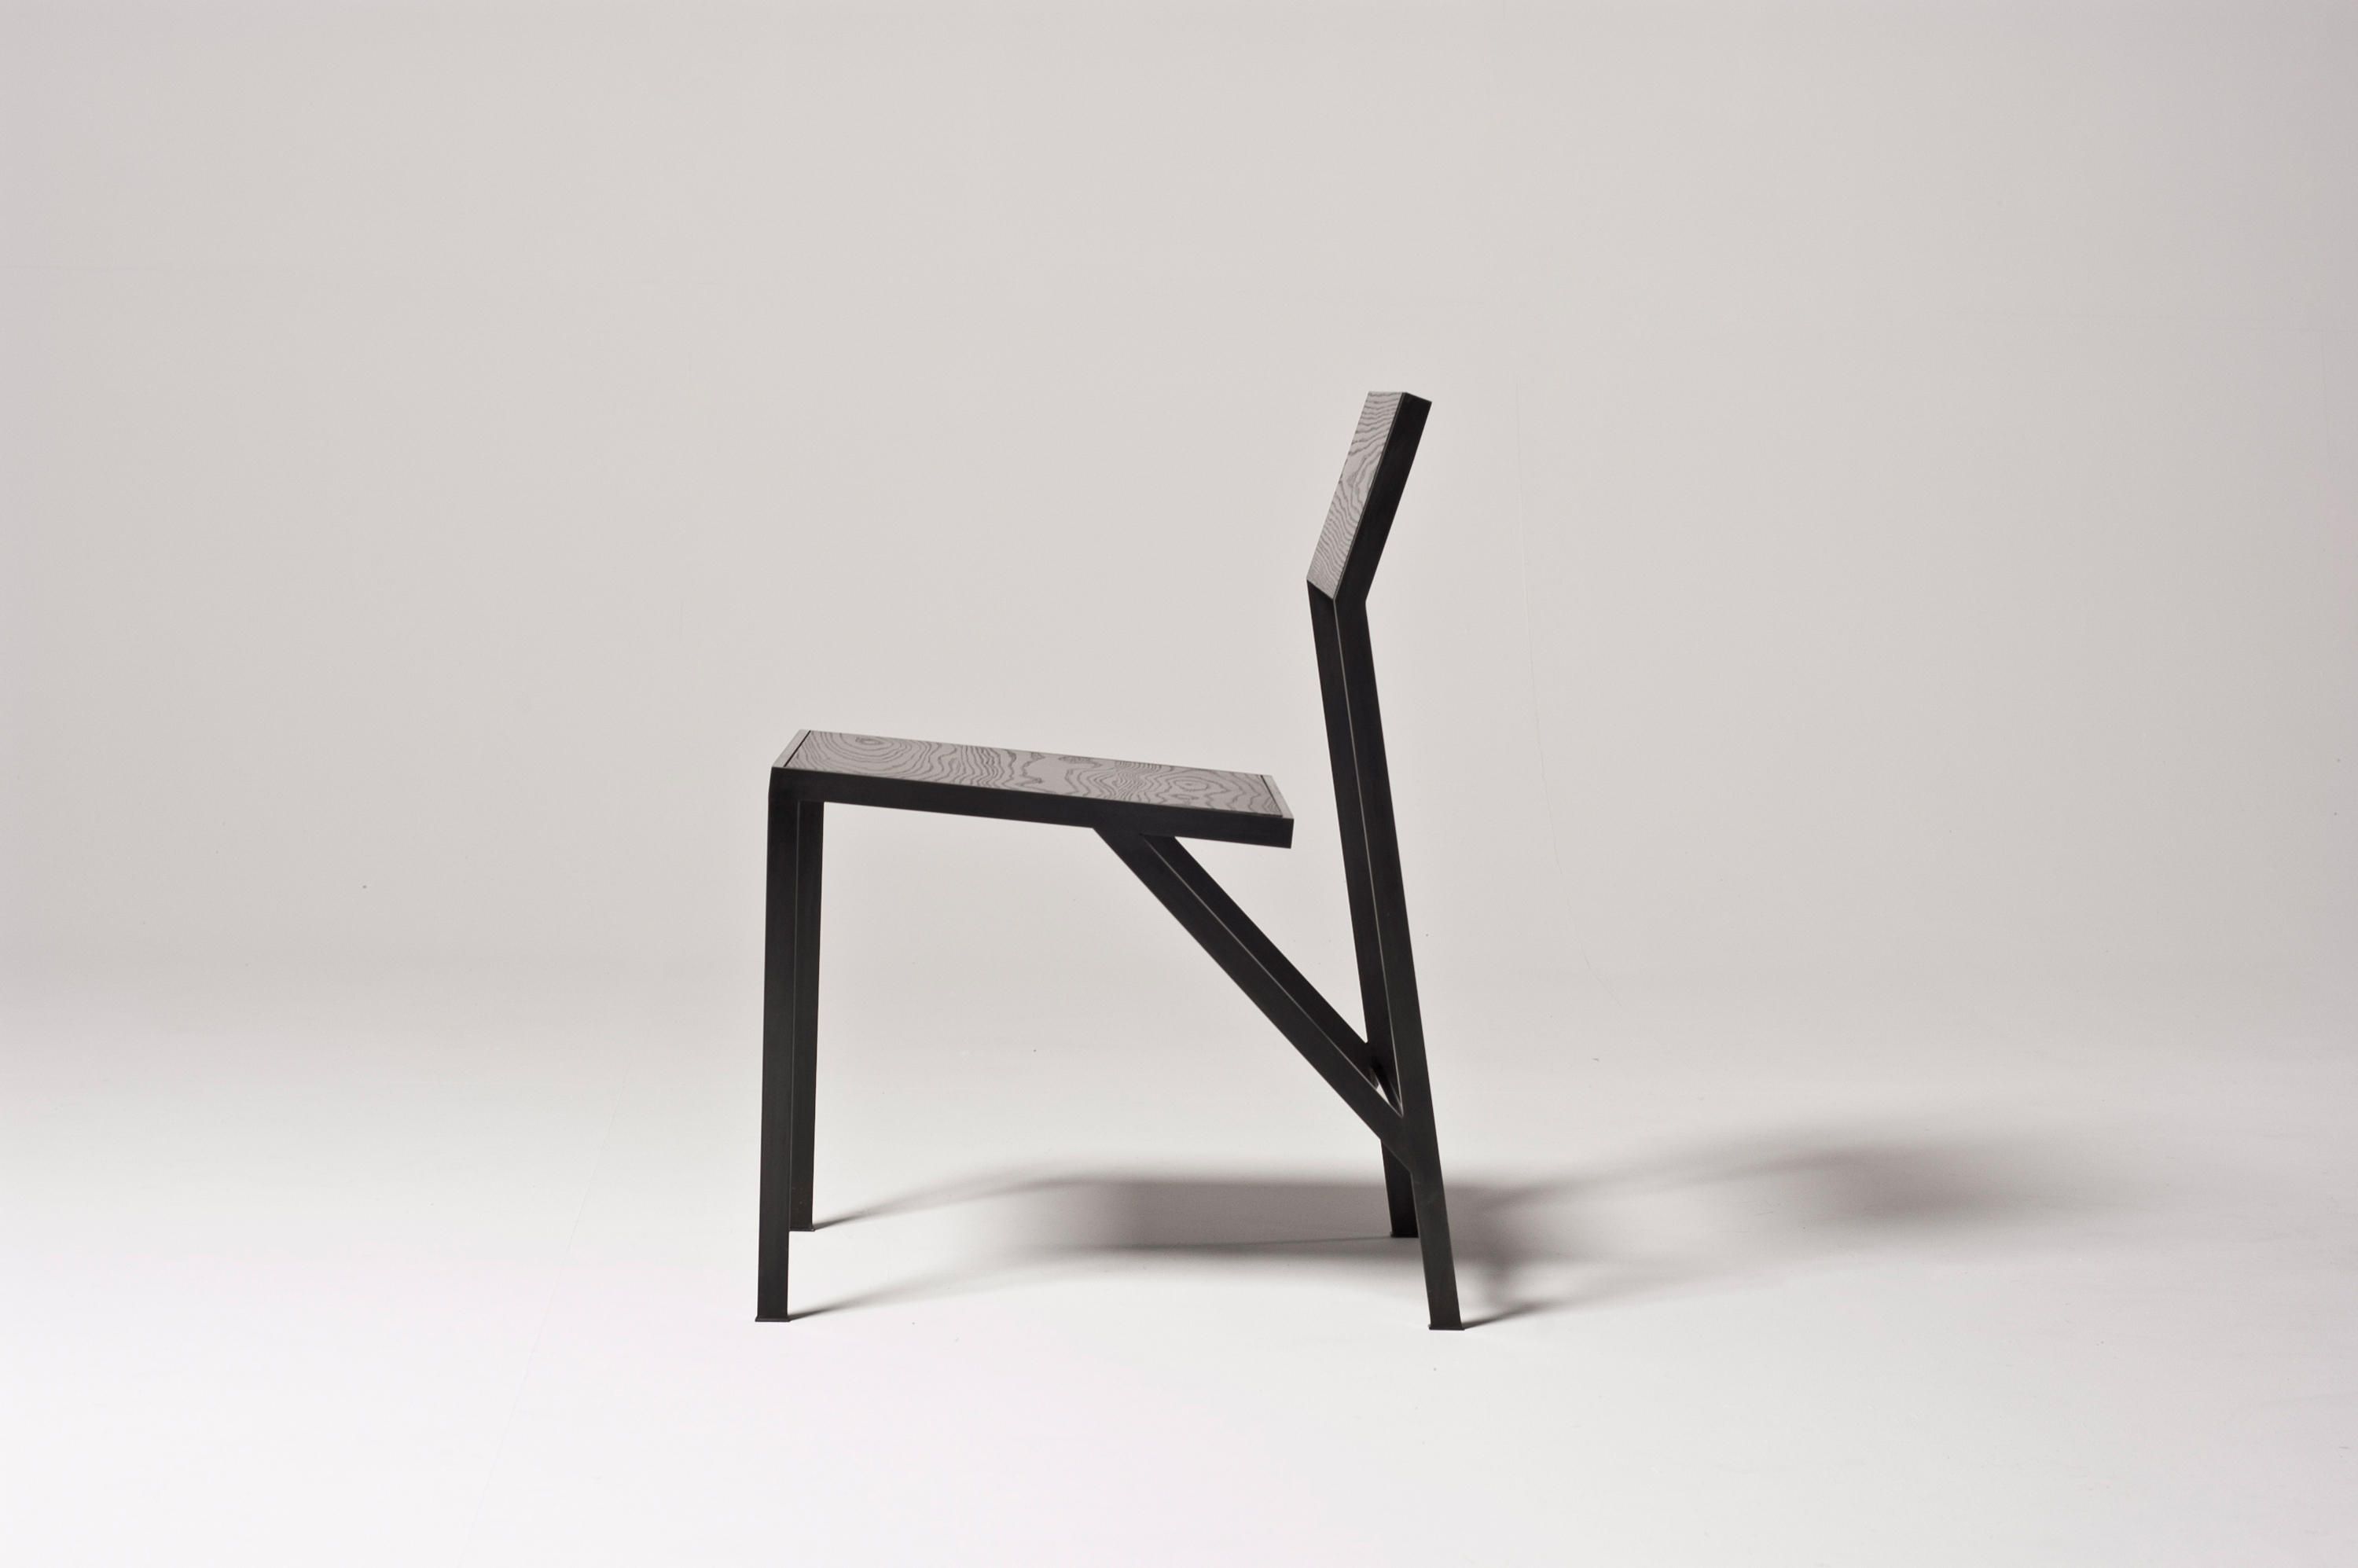 ... Noir Dining Chair by Farrah Sit | Chairs ... & NOIR DINING CHAIR - Chairs from Farrah Sit | Architonic